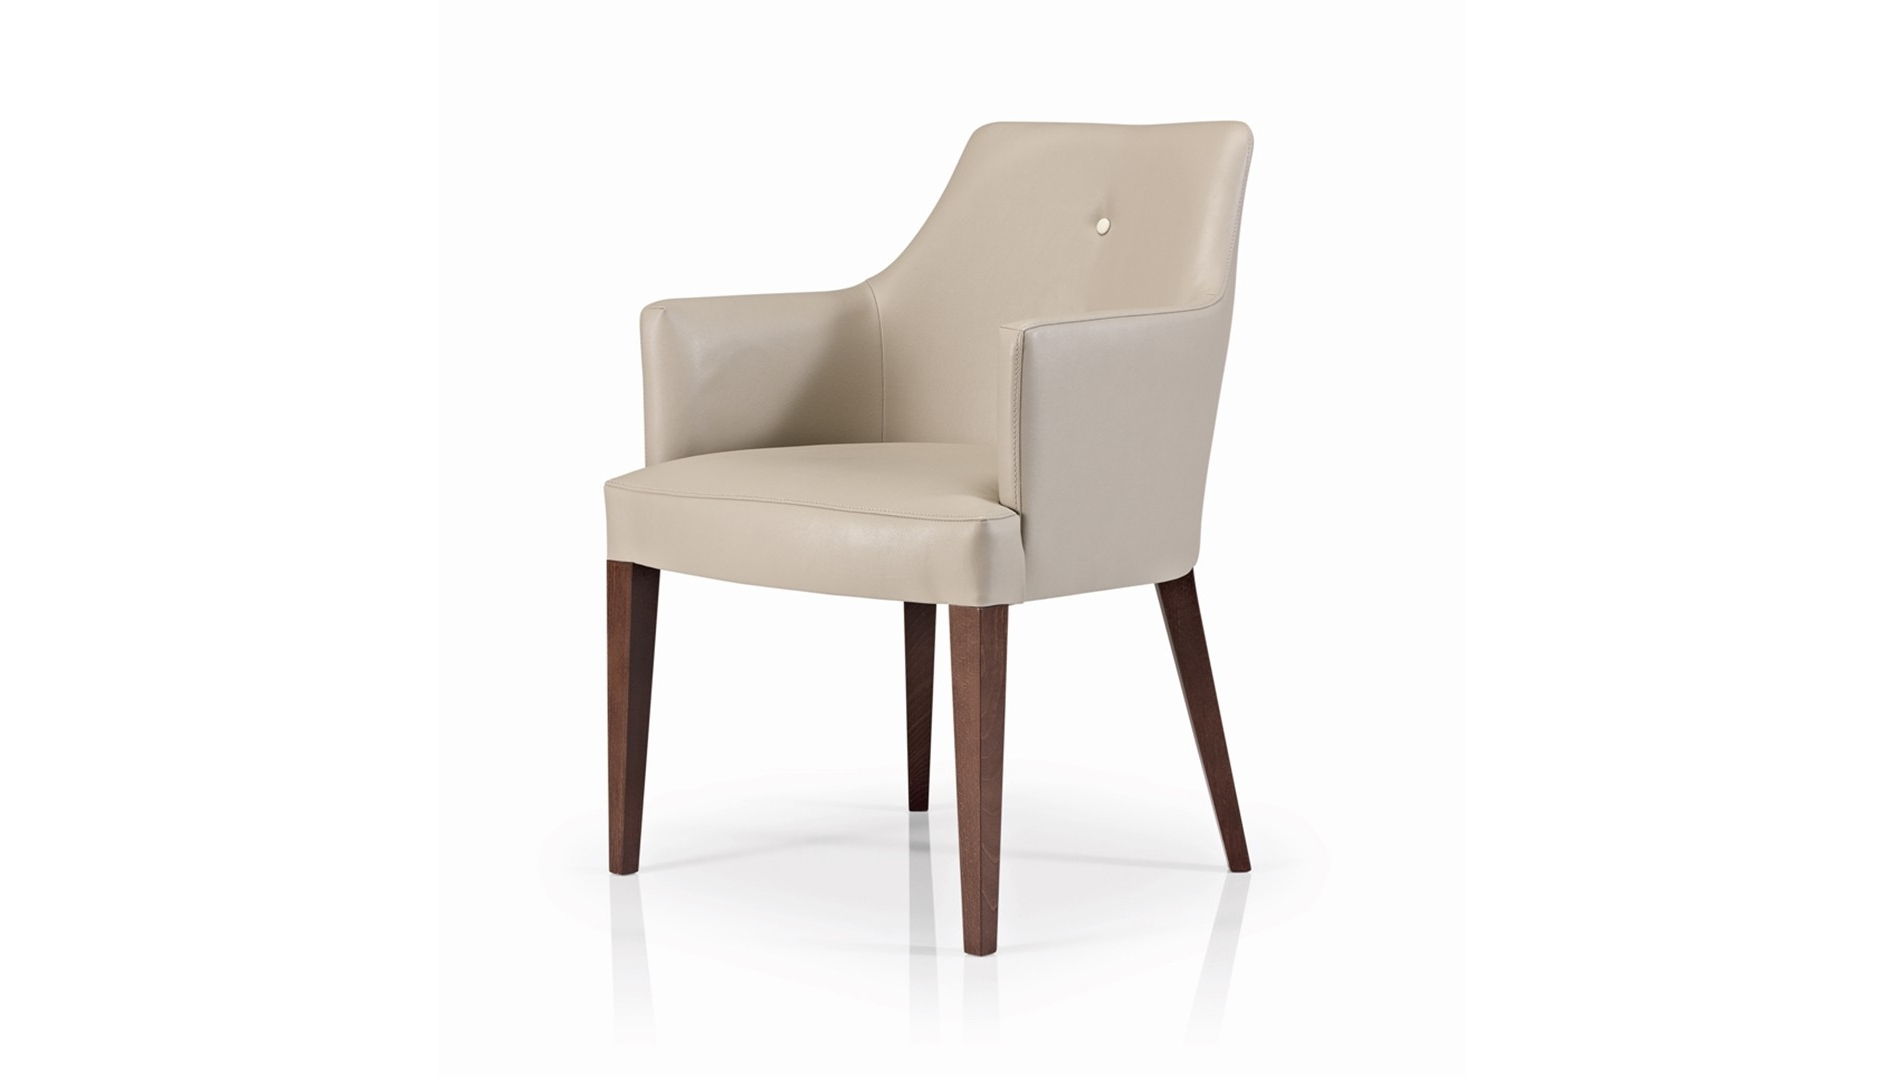 Latest Dining Chairs With Regard To Luxdeco, Venice Carver Dining Chair – Buy Online At Luxdeco (View 20 of 25)